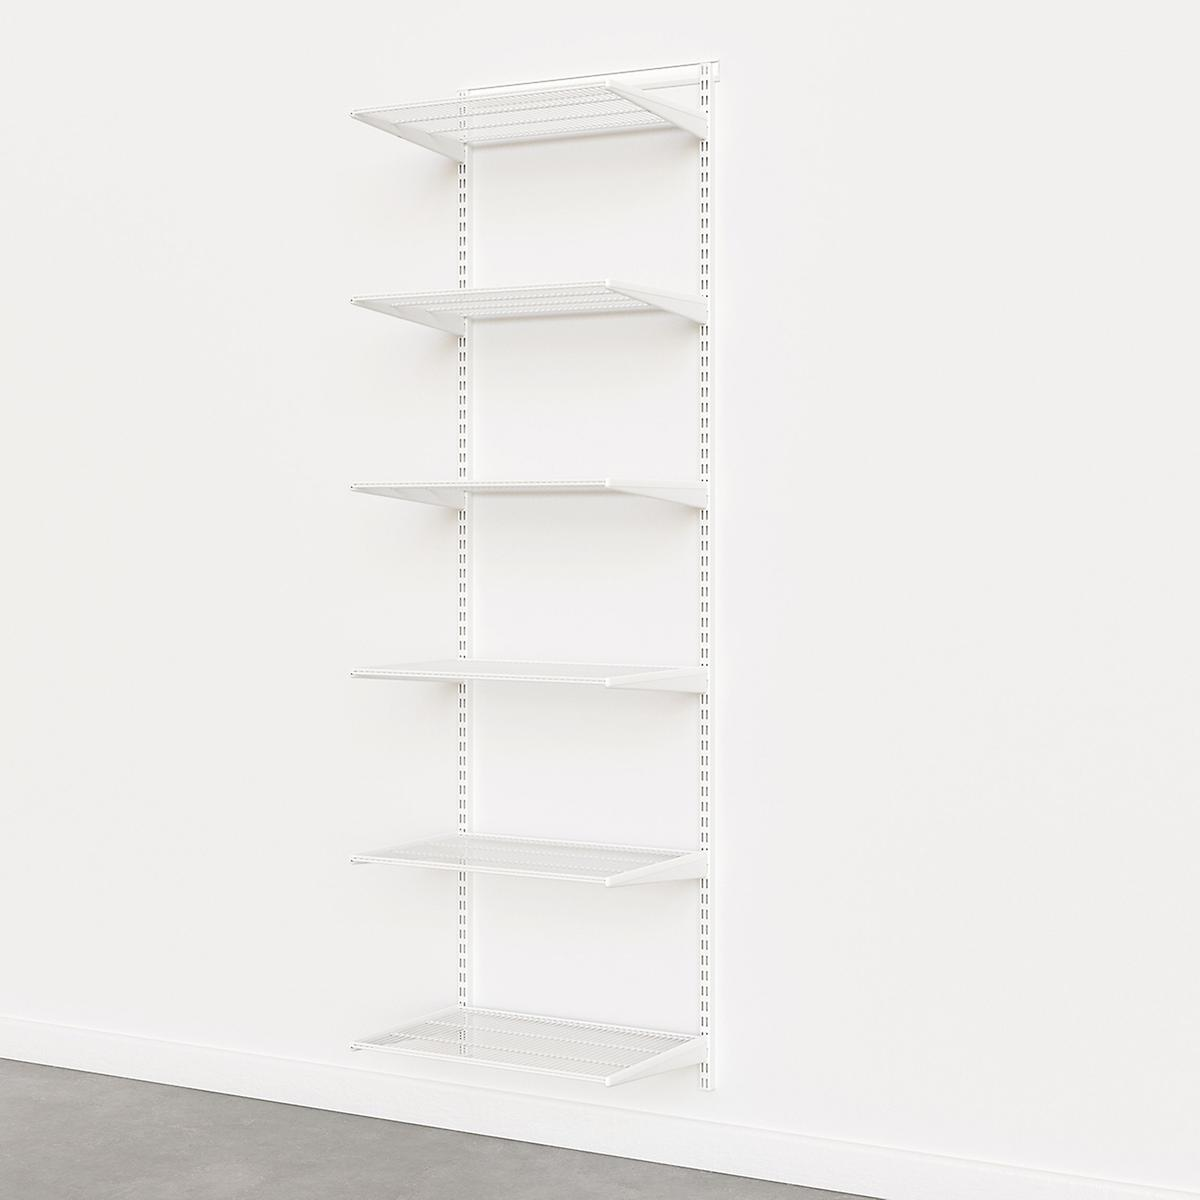 Elfa Classic White 2' Basic Shelving Units for Anywhere